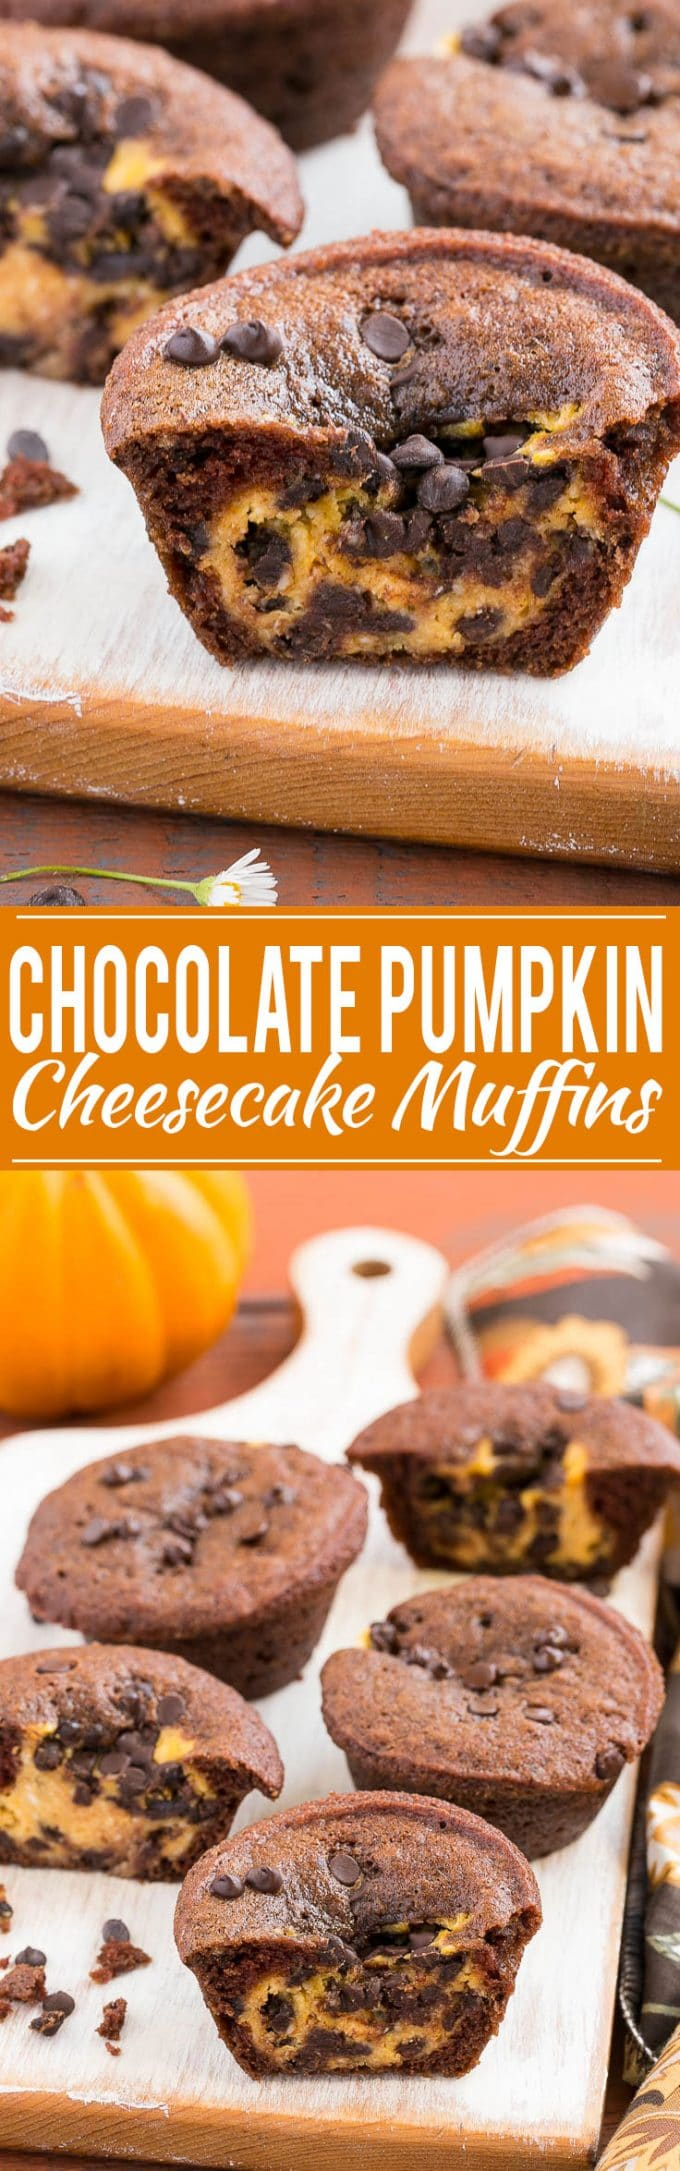 Chocolate Pumpkin Cheesecake Muffin Recipe | Chocolate Pumpkin Muffins | Chocolate Pumpkin Cheesecake Muffins